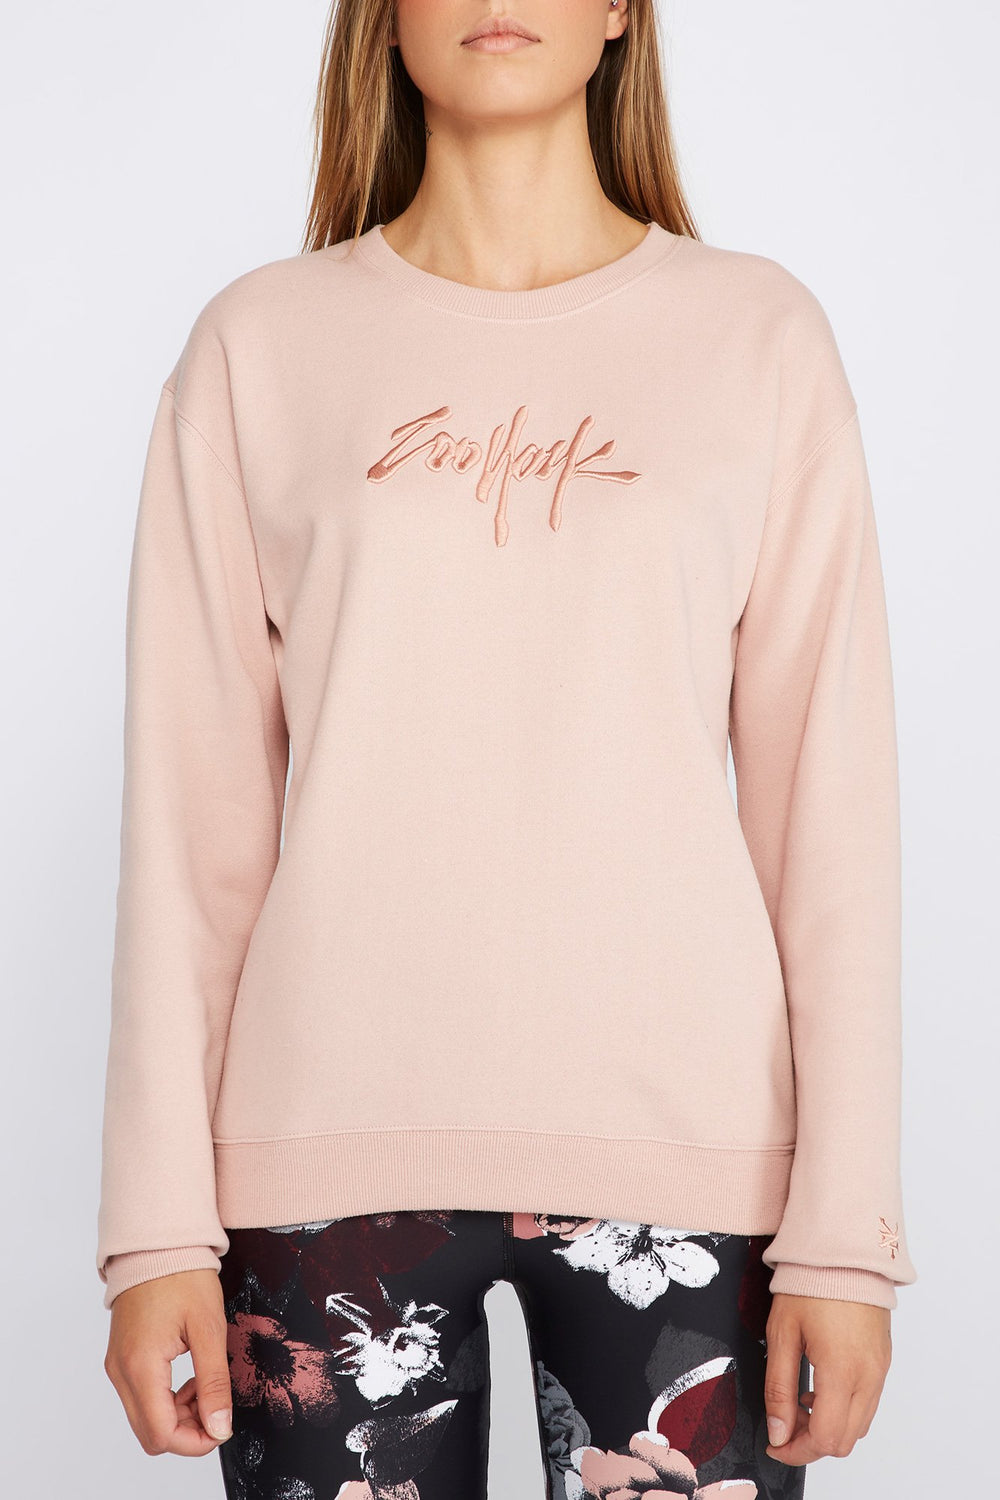 Zoo York Womens Embroidered Logo Sweatshirt Dusty Rose